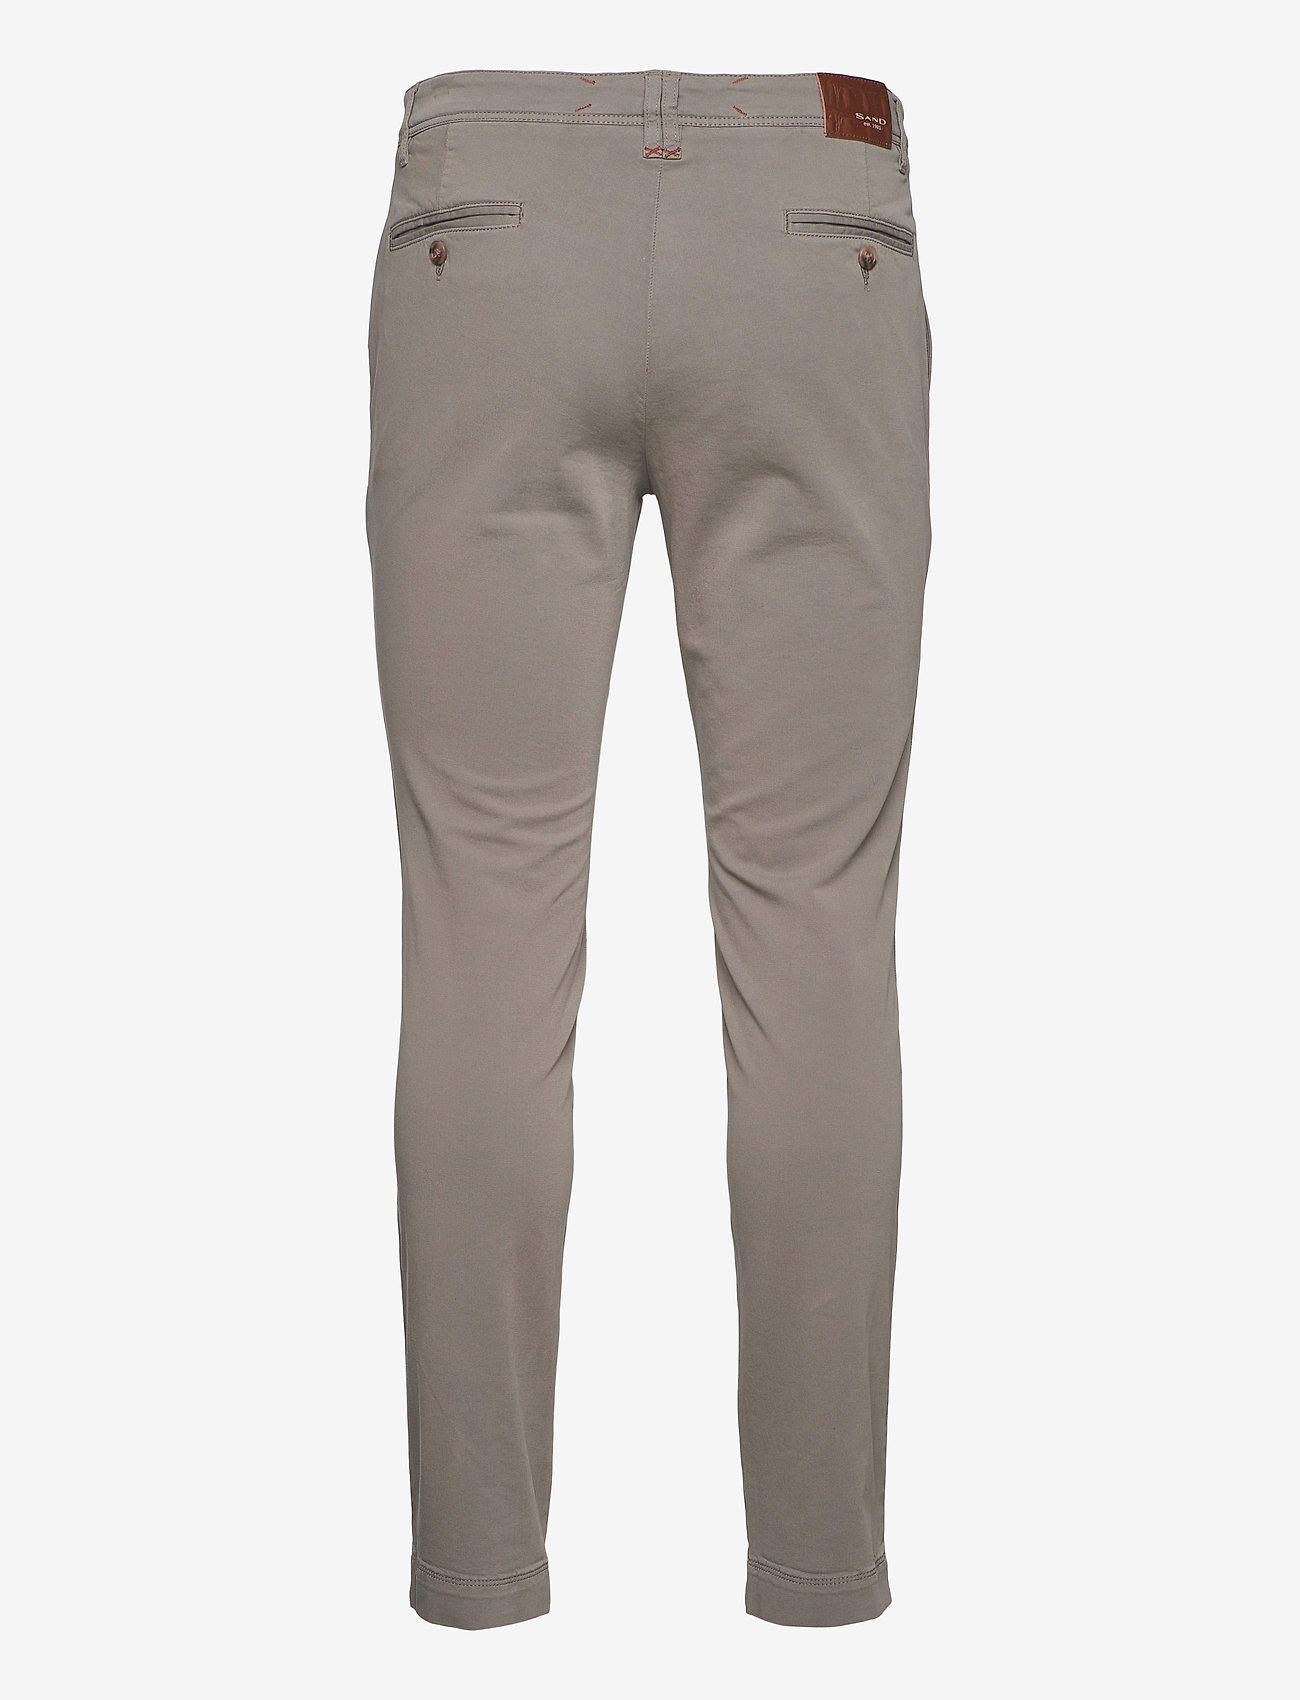 SAND - Cashmere Touch - Dolan Slim - regular jeans - dark army - 1